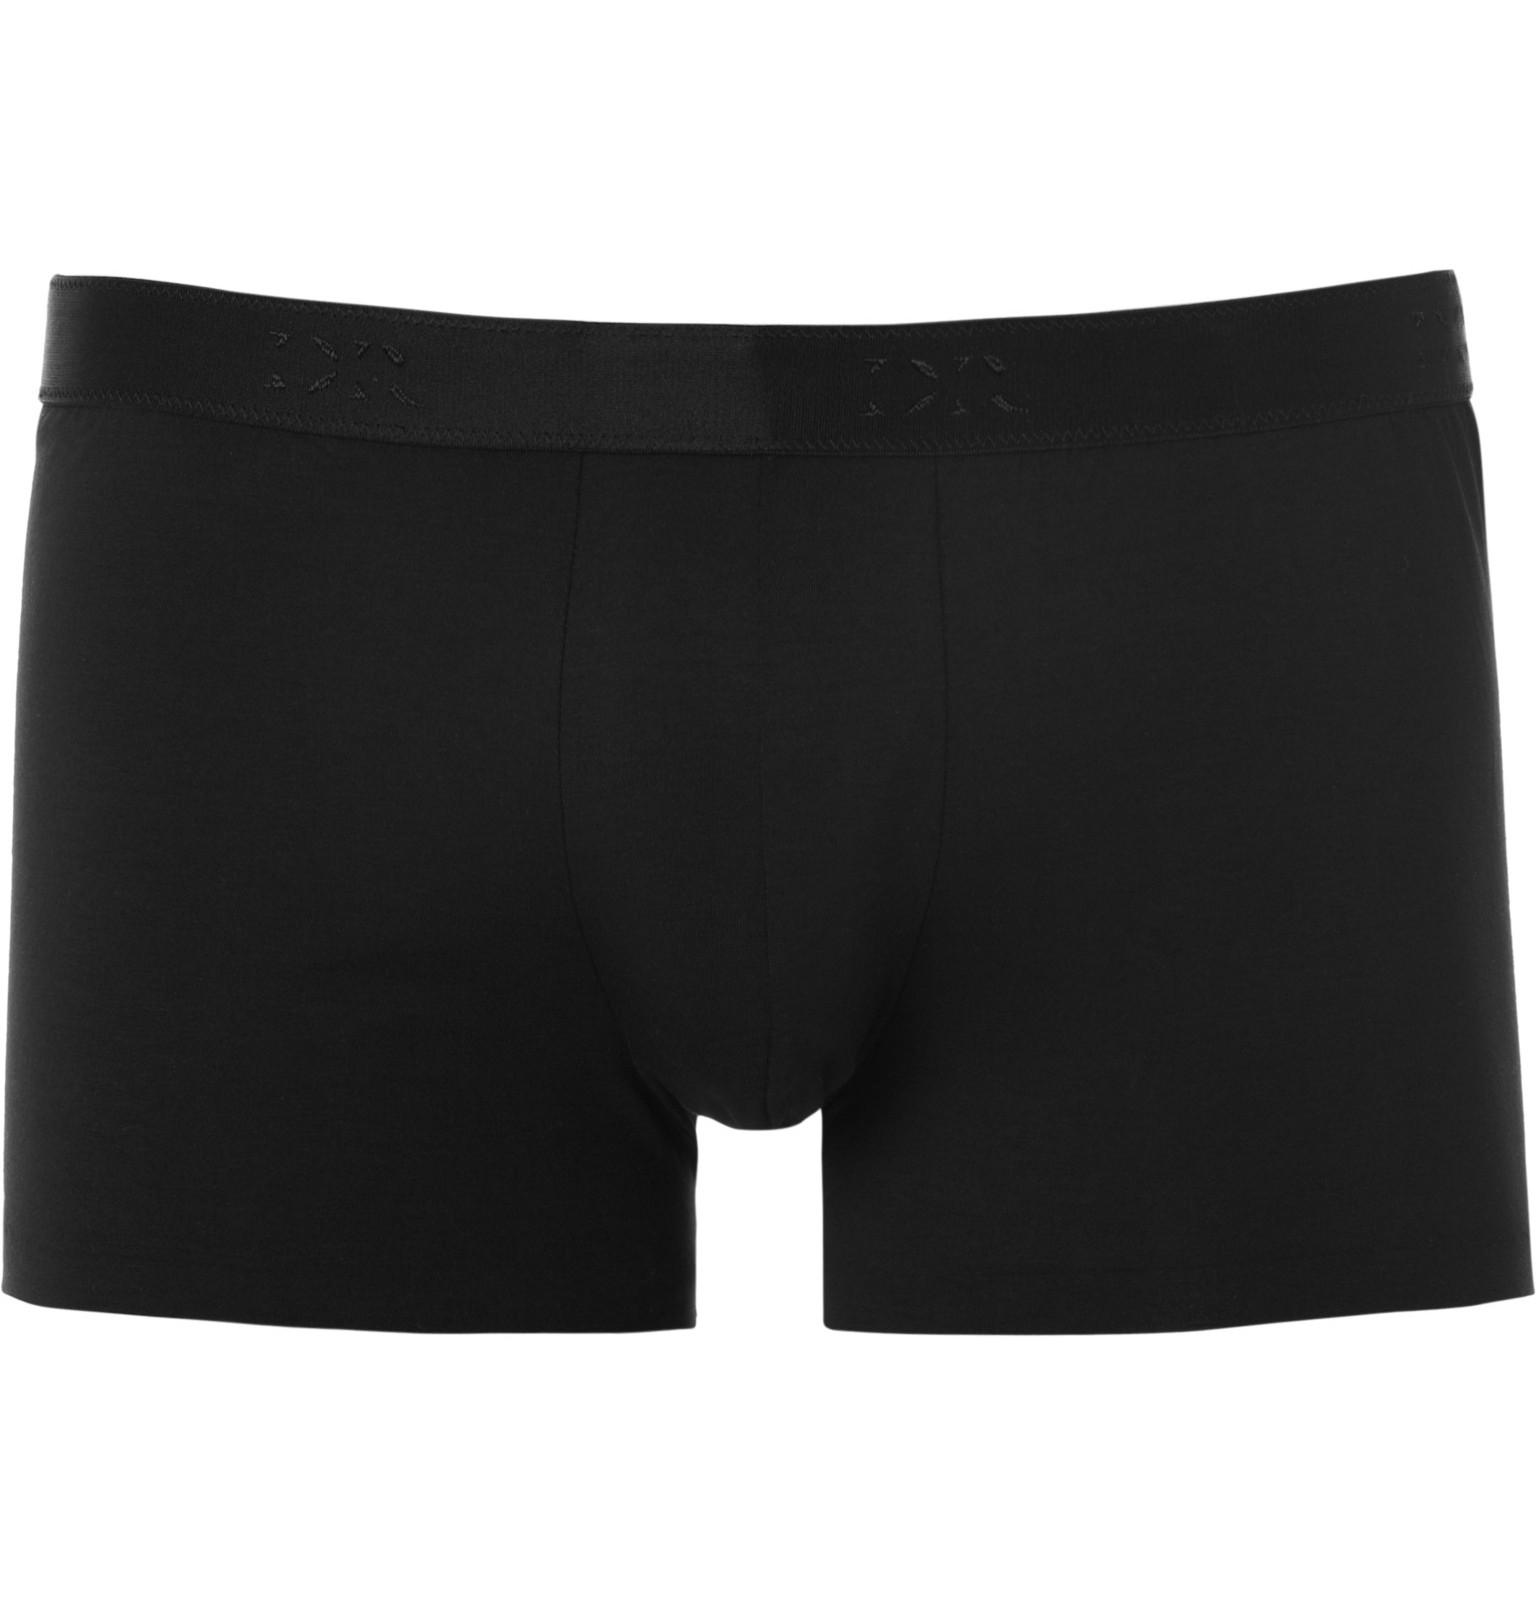 Sale Pick A Best Purchase Jack Stretch-pima Cotton Boxer Briefs Derek Rose Outlet Store Locations Clearance Looking For Buy Cheap Amazon U4BQsNi78